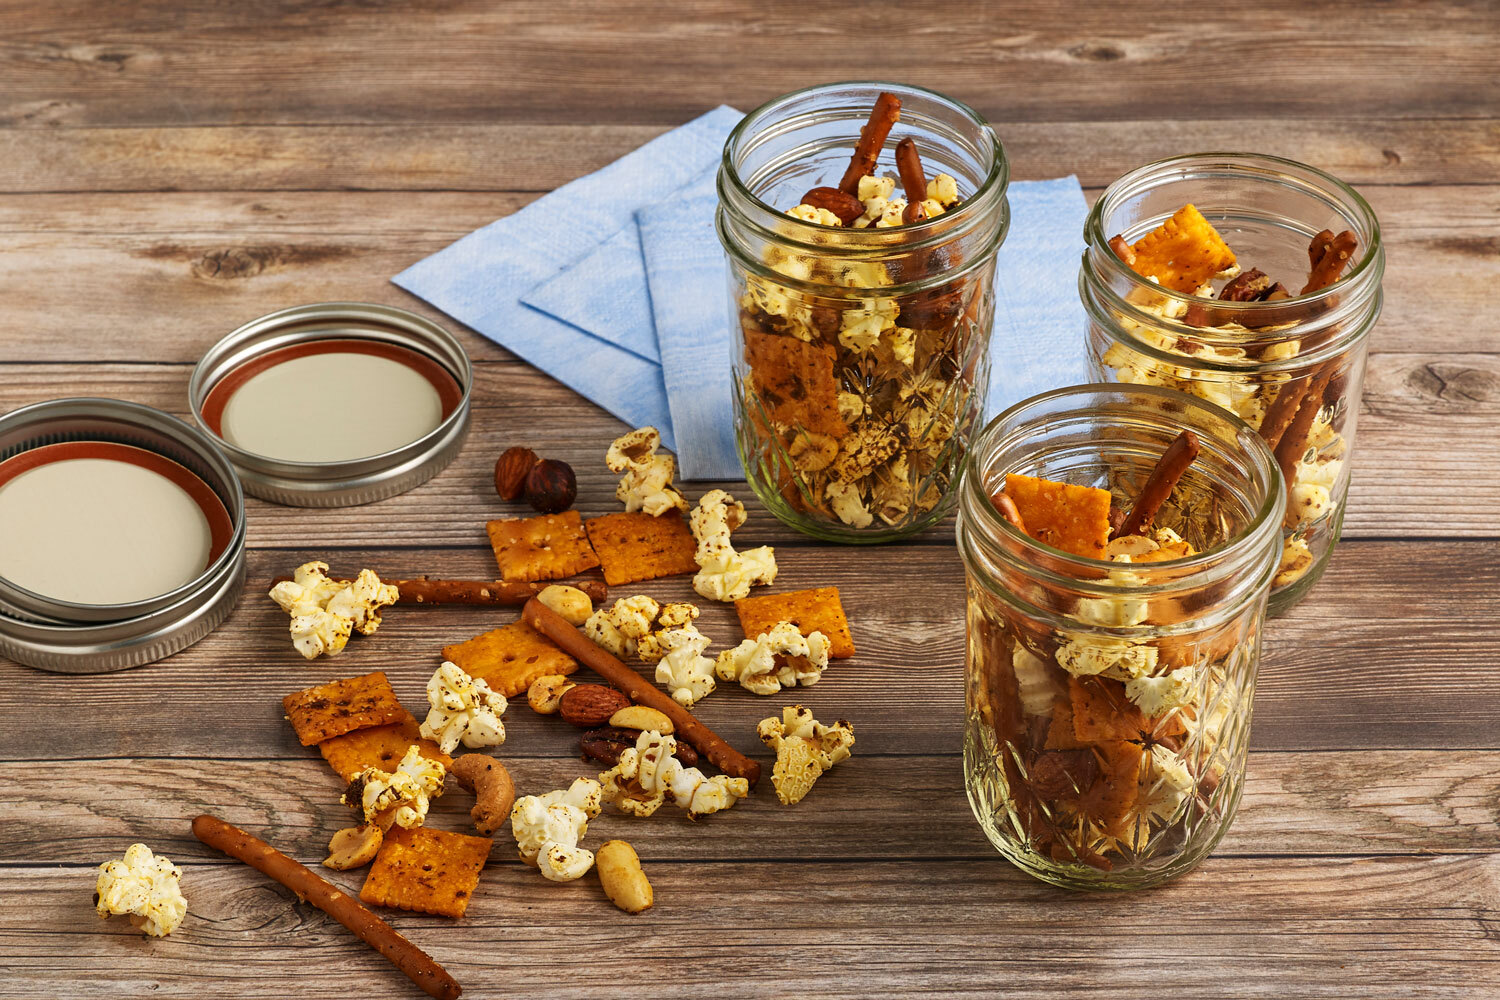 Tex-Mex Snack Mix Image 1